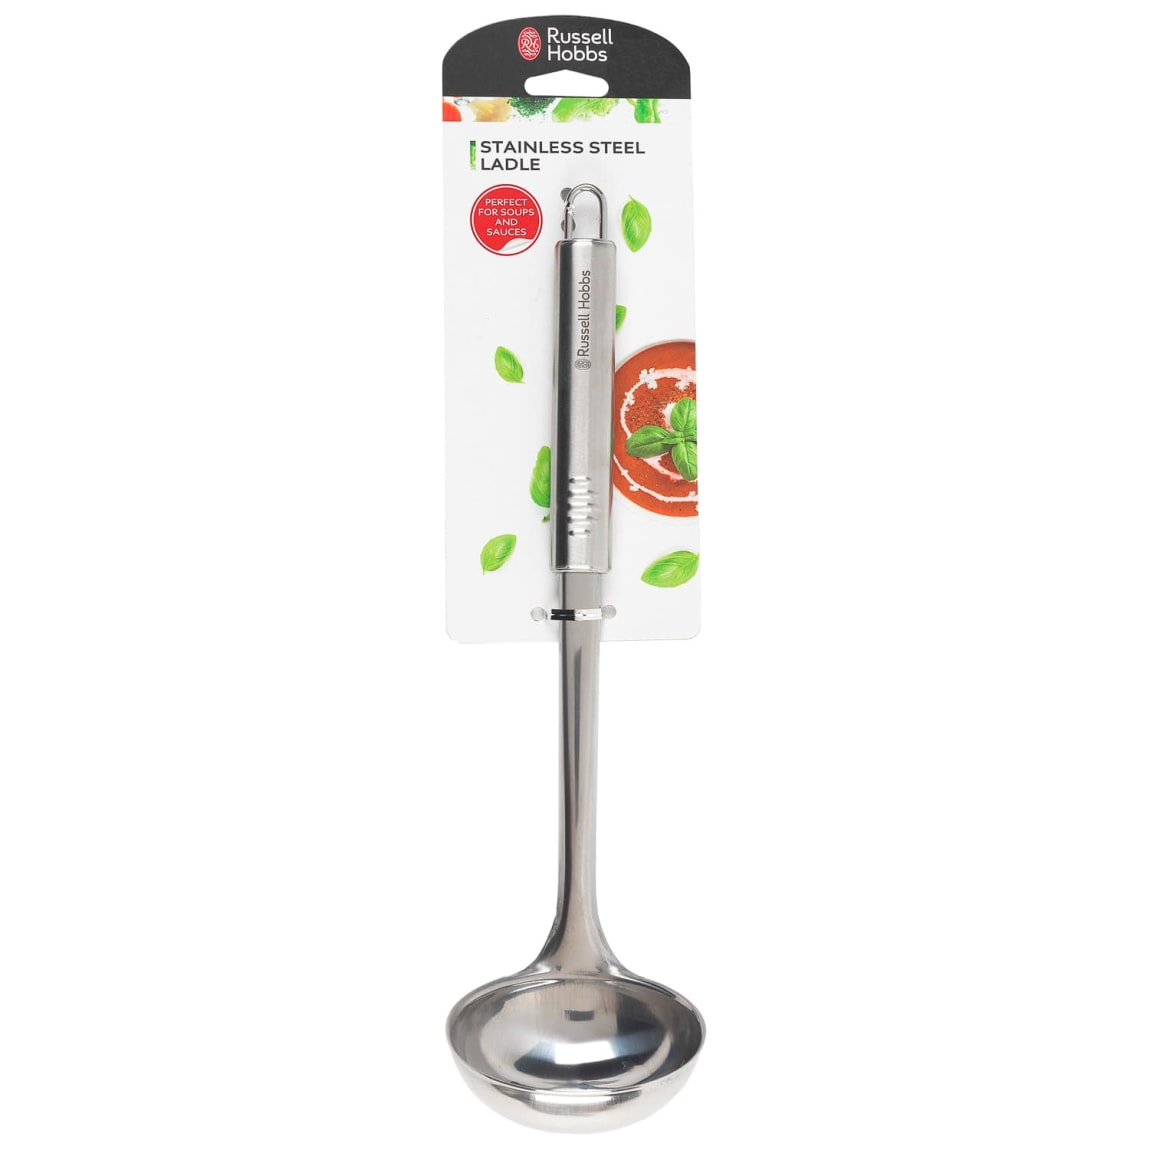 Russell Hobbs Stainless Steel Soup Ladle